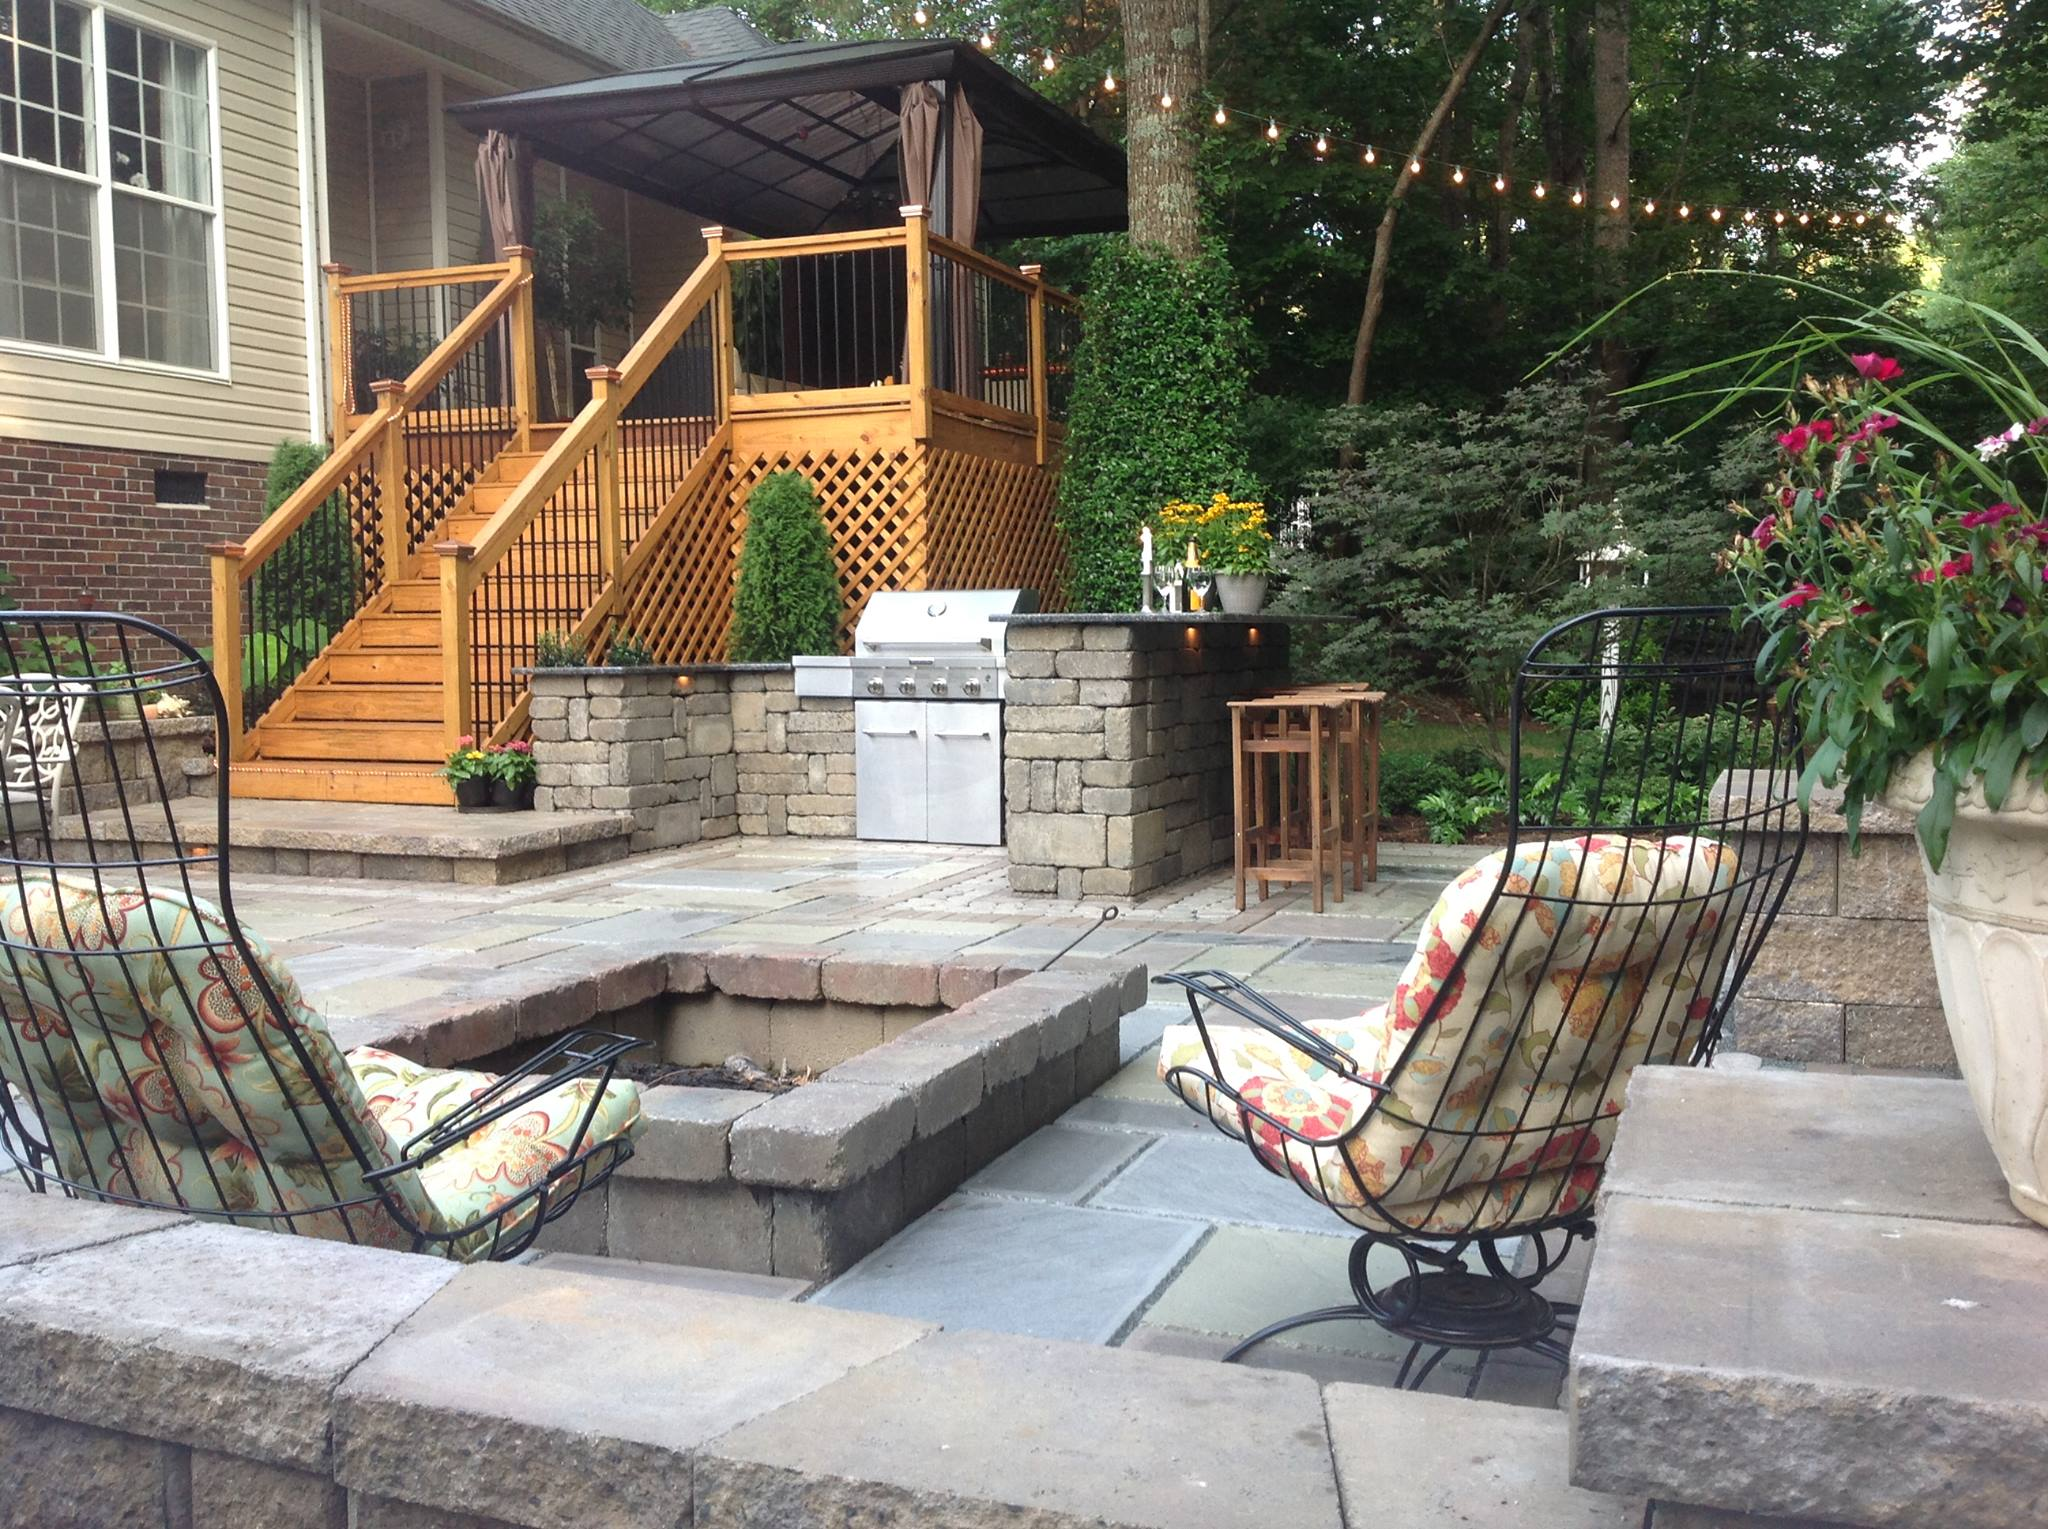 Top landscapers in charlotte nc - Kitchen